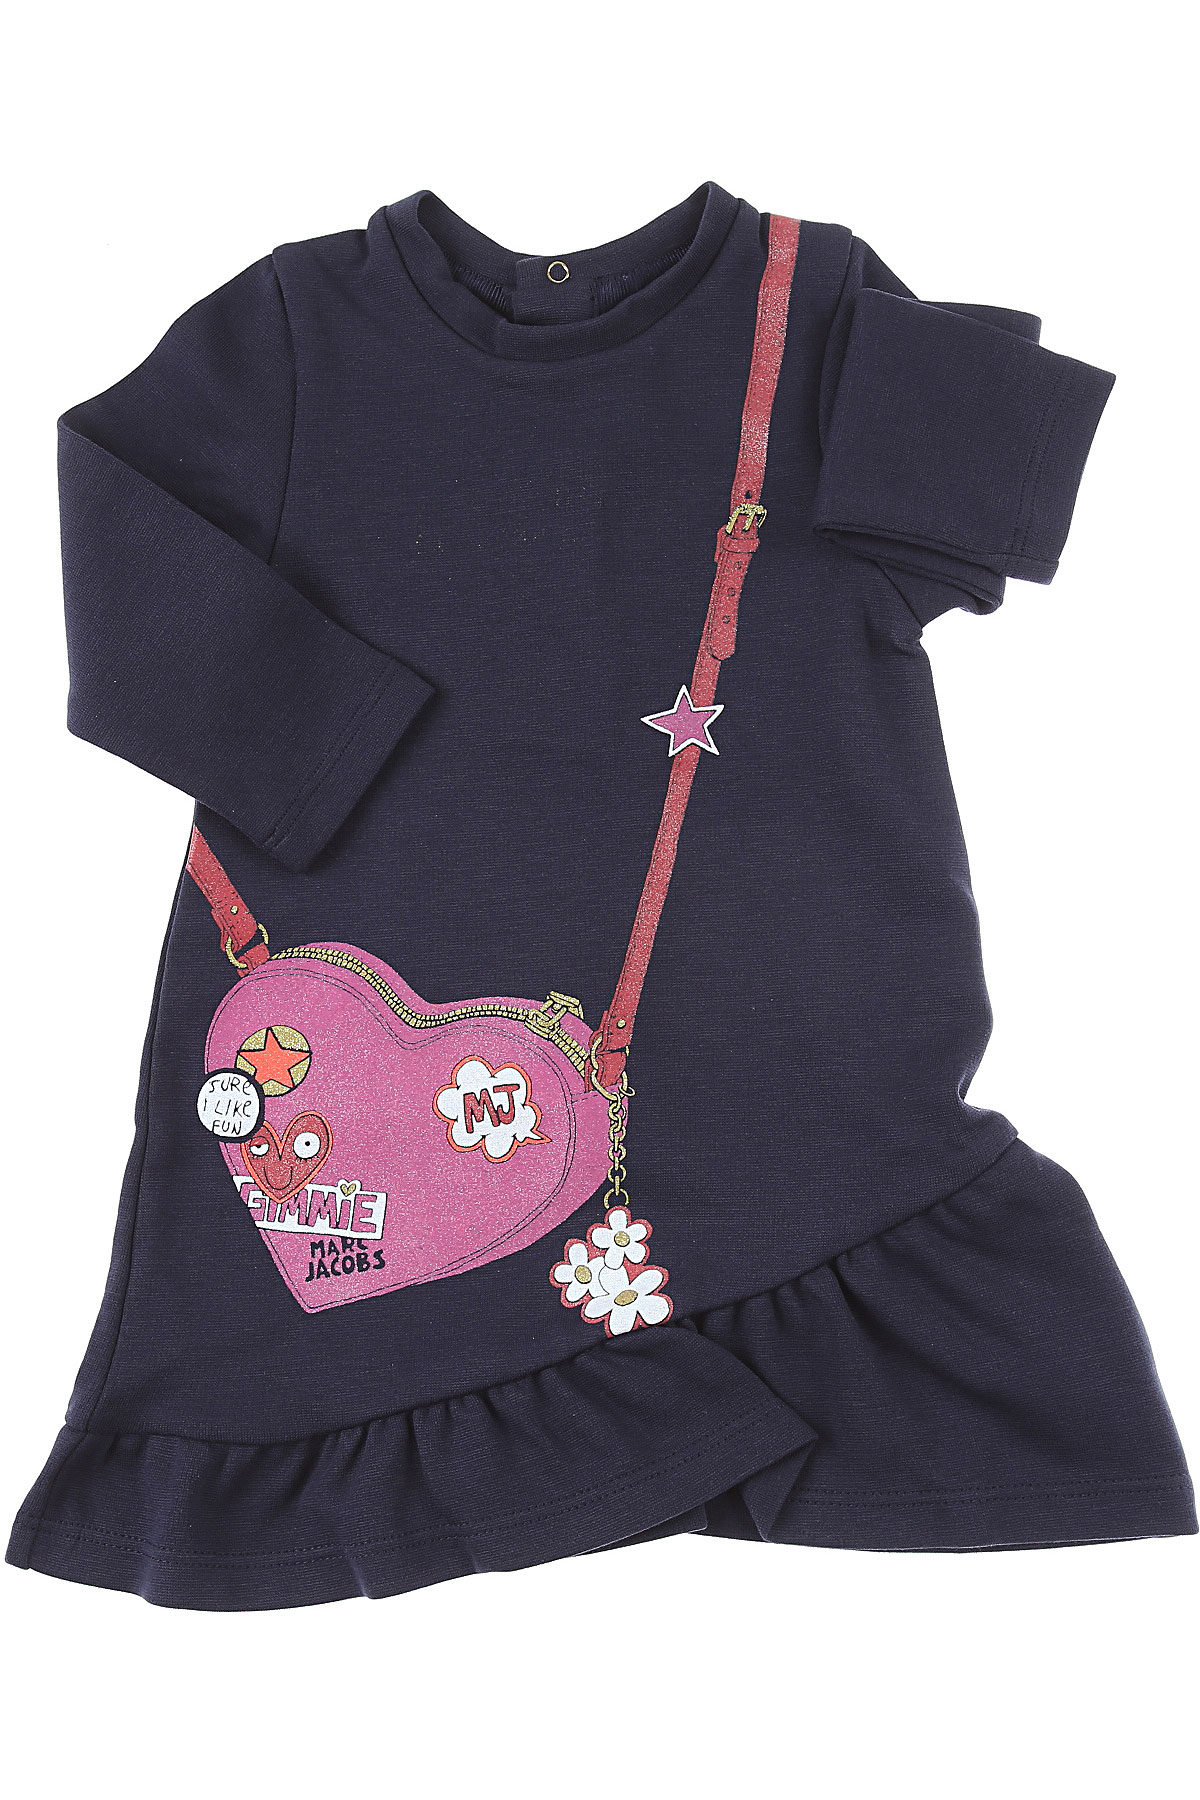 Marc Jacobs Baby Dress for Girls On Sale, Blue, Cotton, 2019, 12M 2Y 3Y 6M 9M